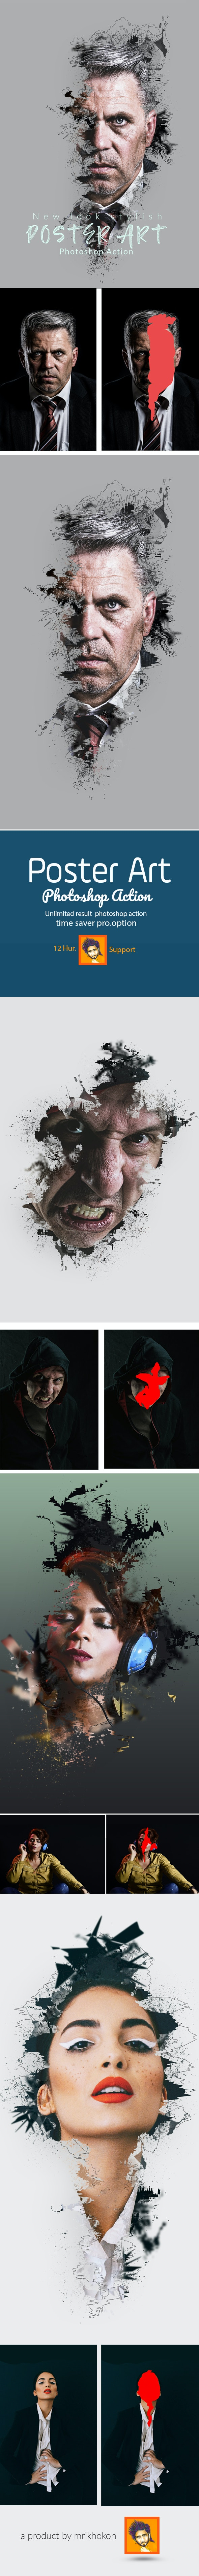 Poster Art Photoshop Action - Actions Photoshop